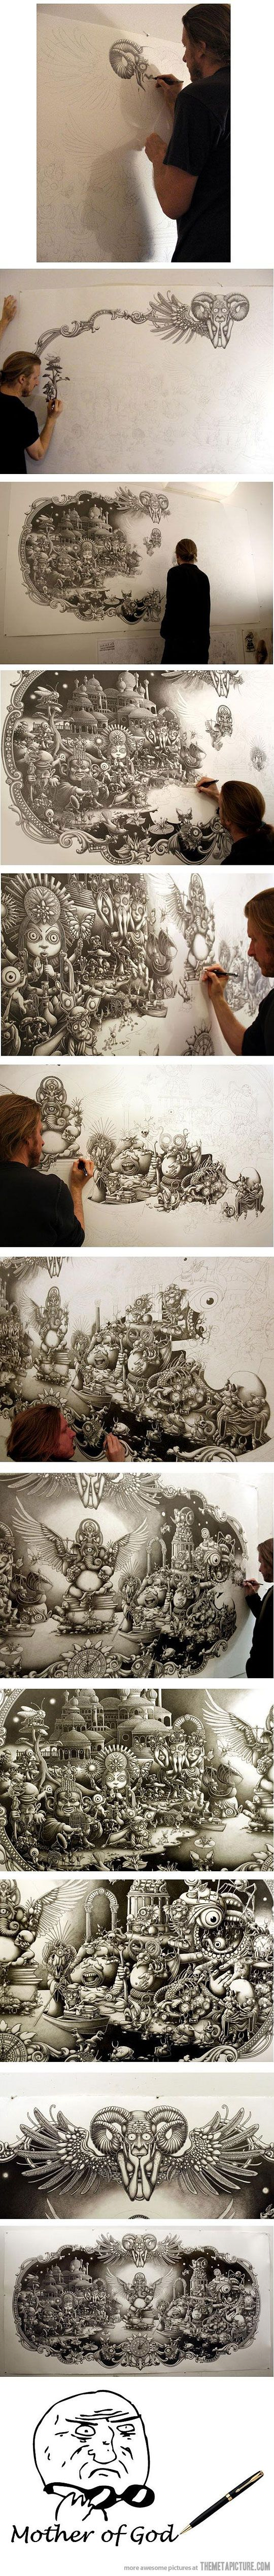 Awesome pen drawing - The Meta Picture would like to know who the artist is...comment if you know!!